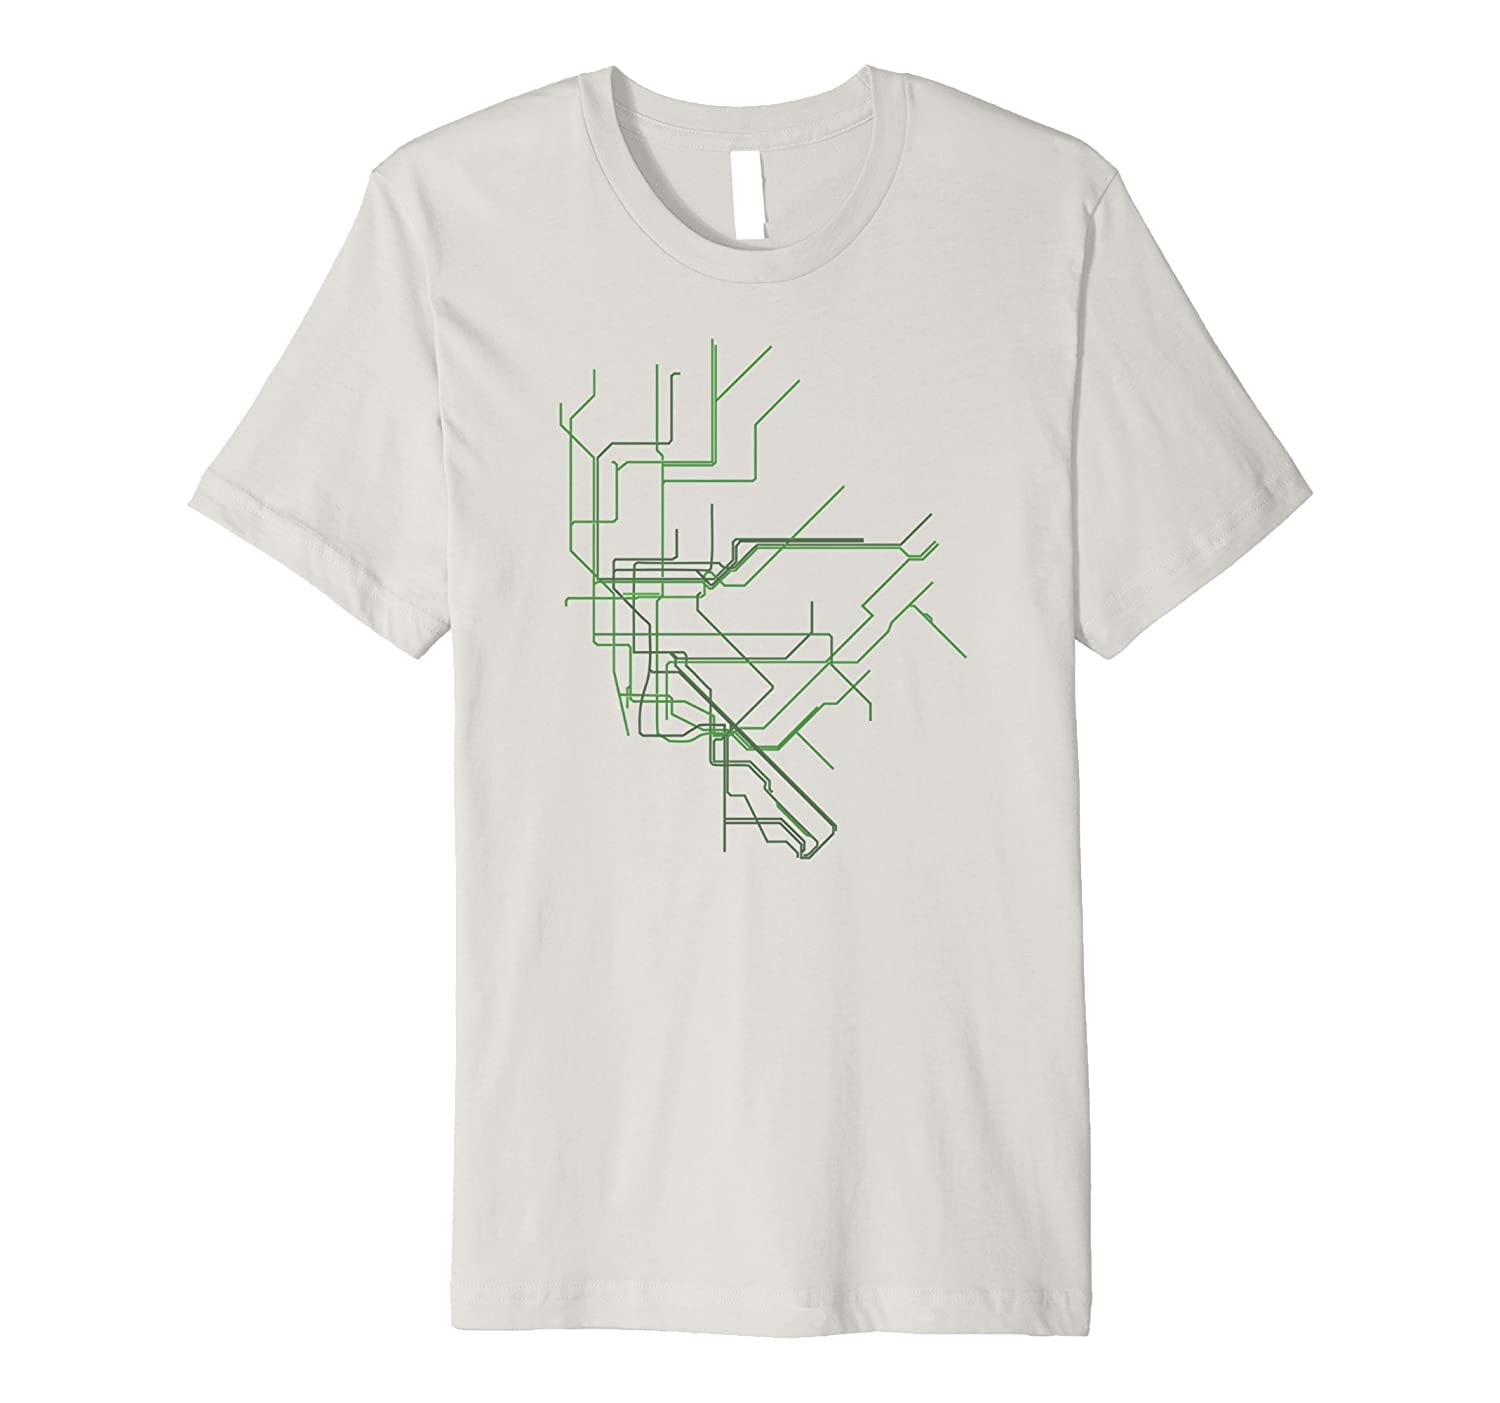 Nyc Subway Map T Shirt.New York City Nyc Subway Map Line Art Shirt